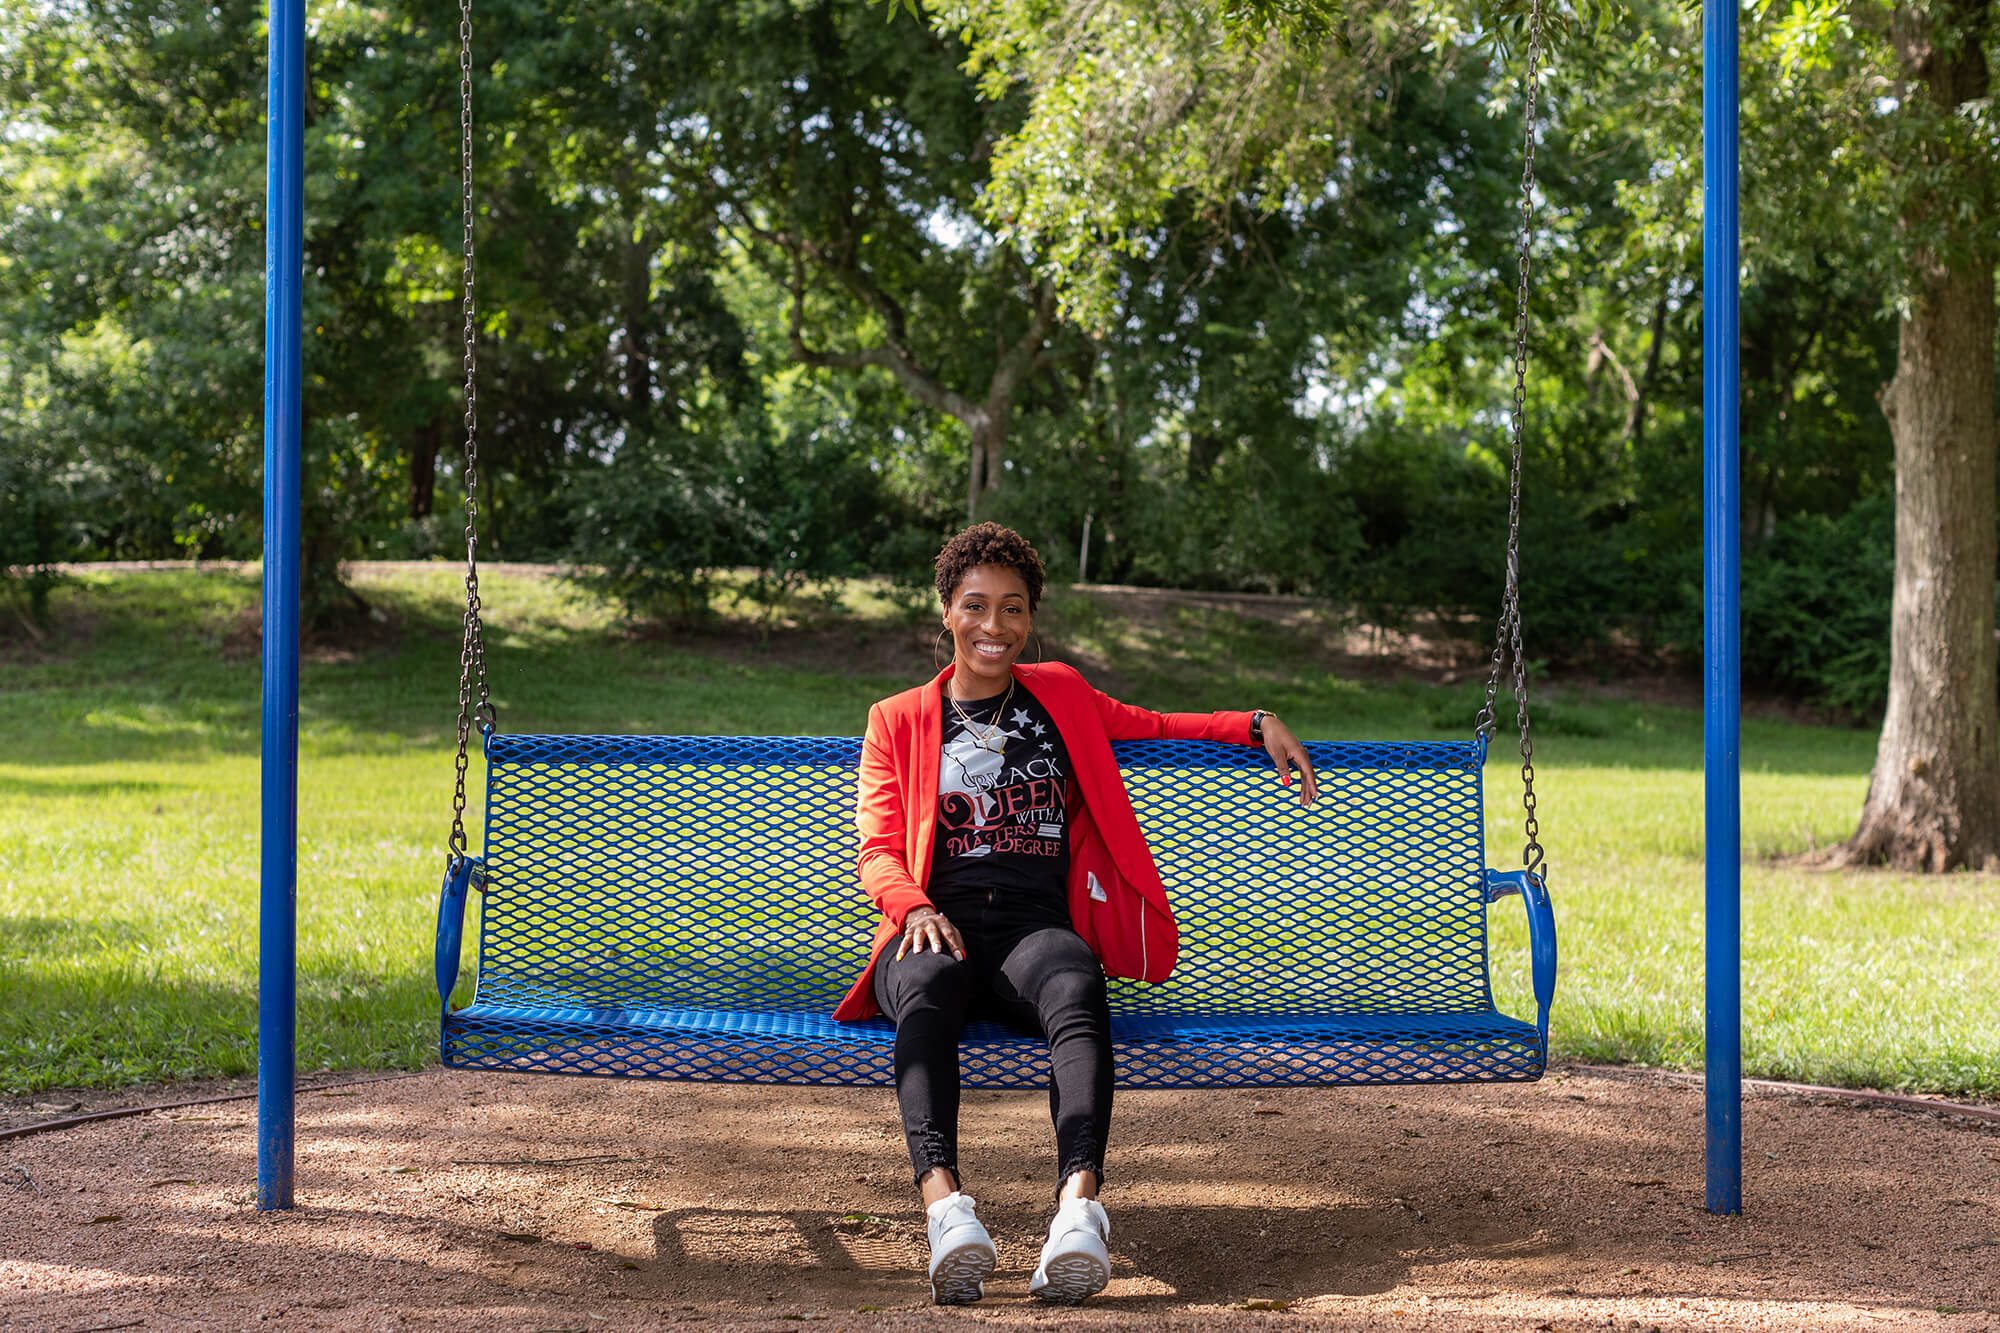 A woman in a red blazer sits on a blue bench in a park.